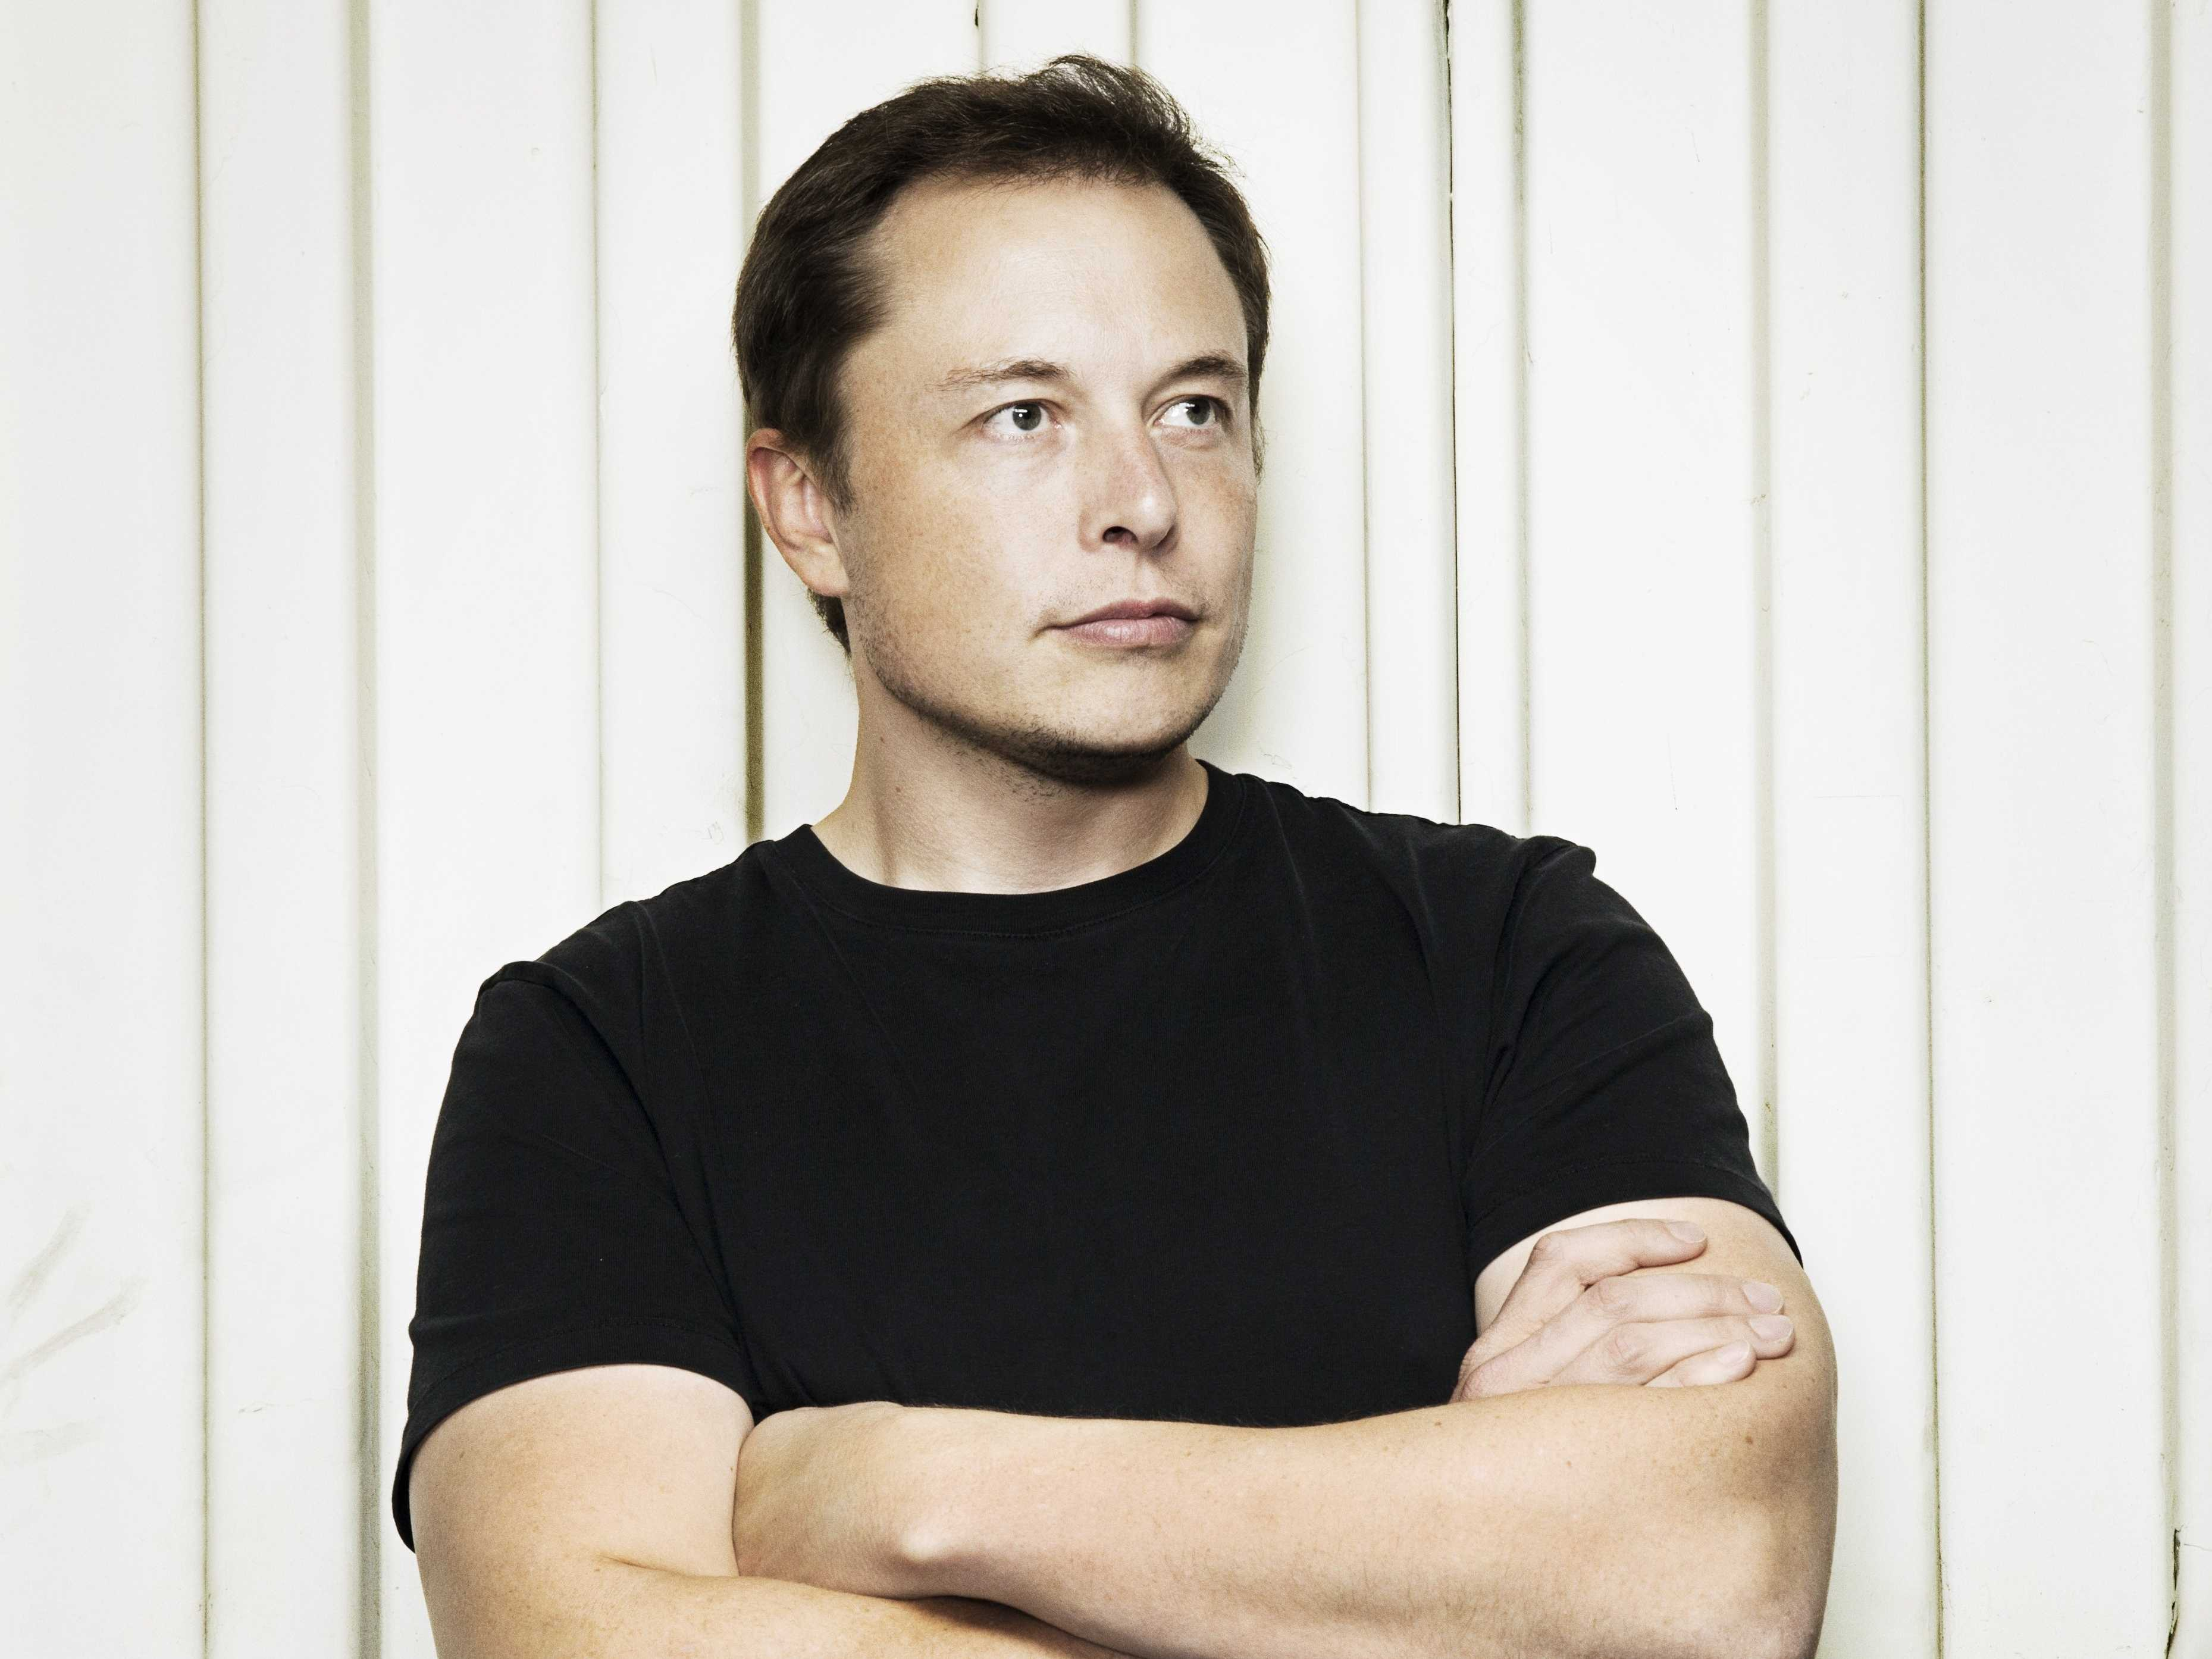 Elon Musk Wallpapers High Quality